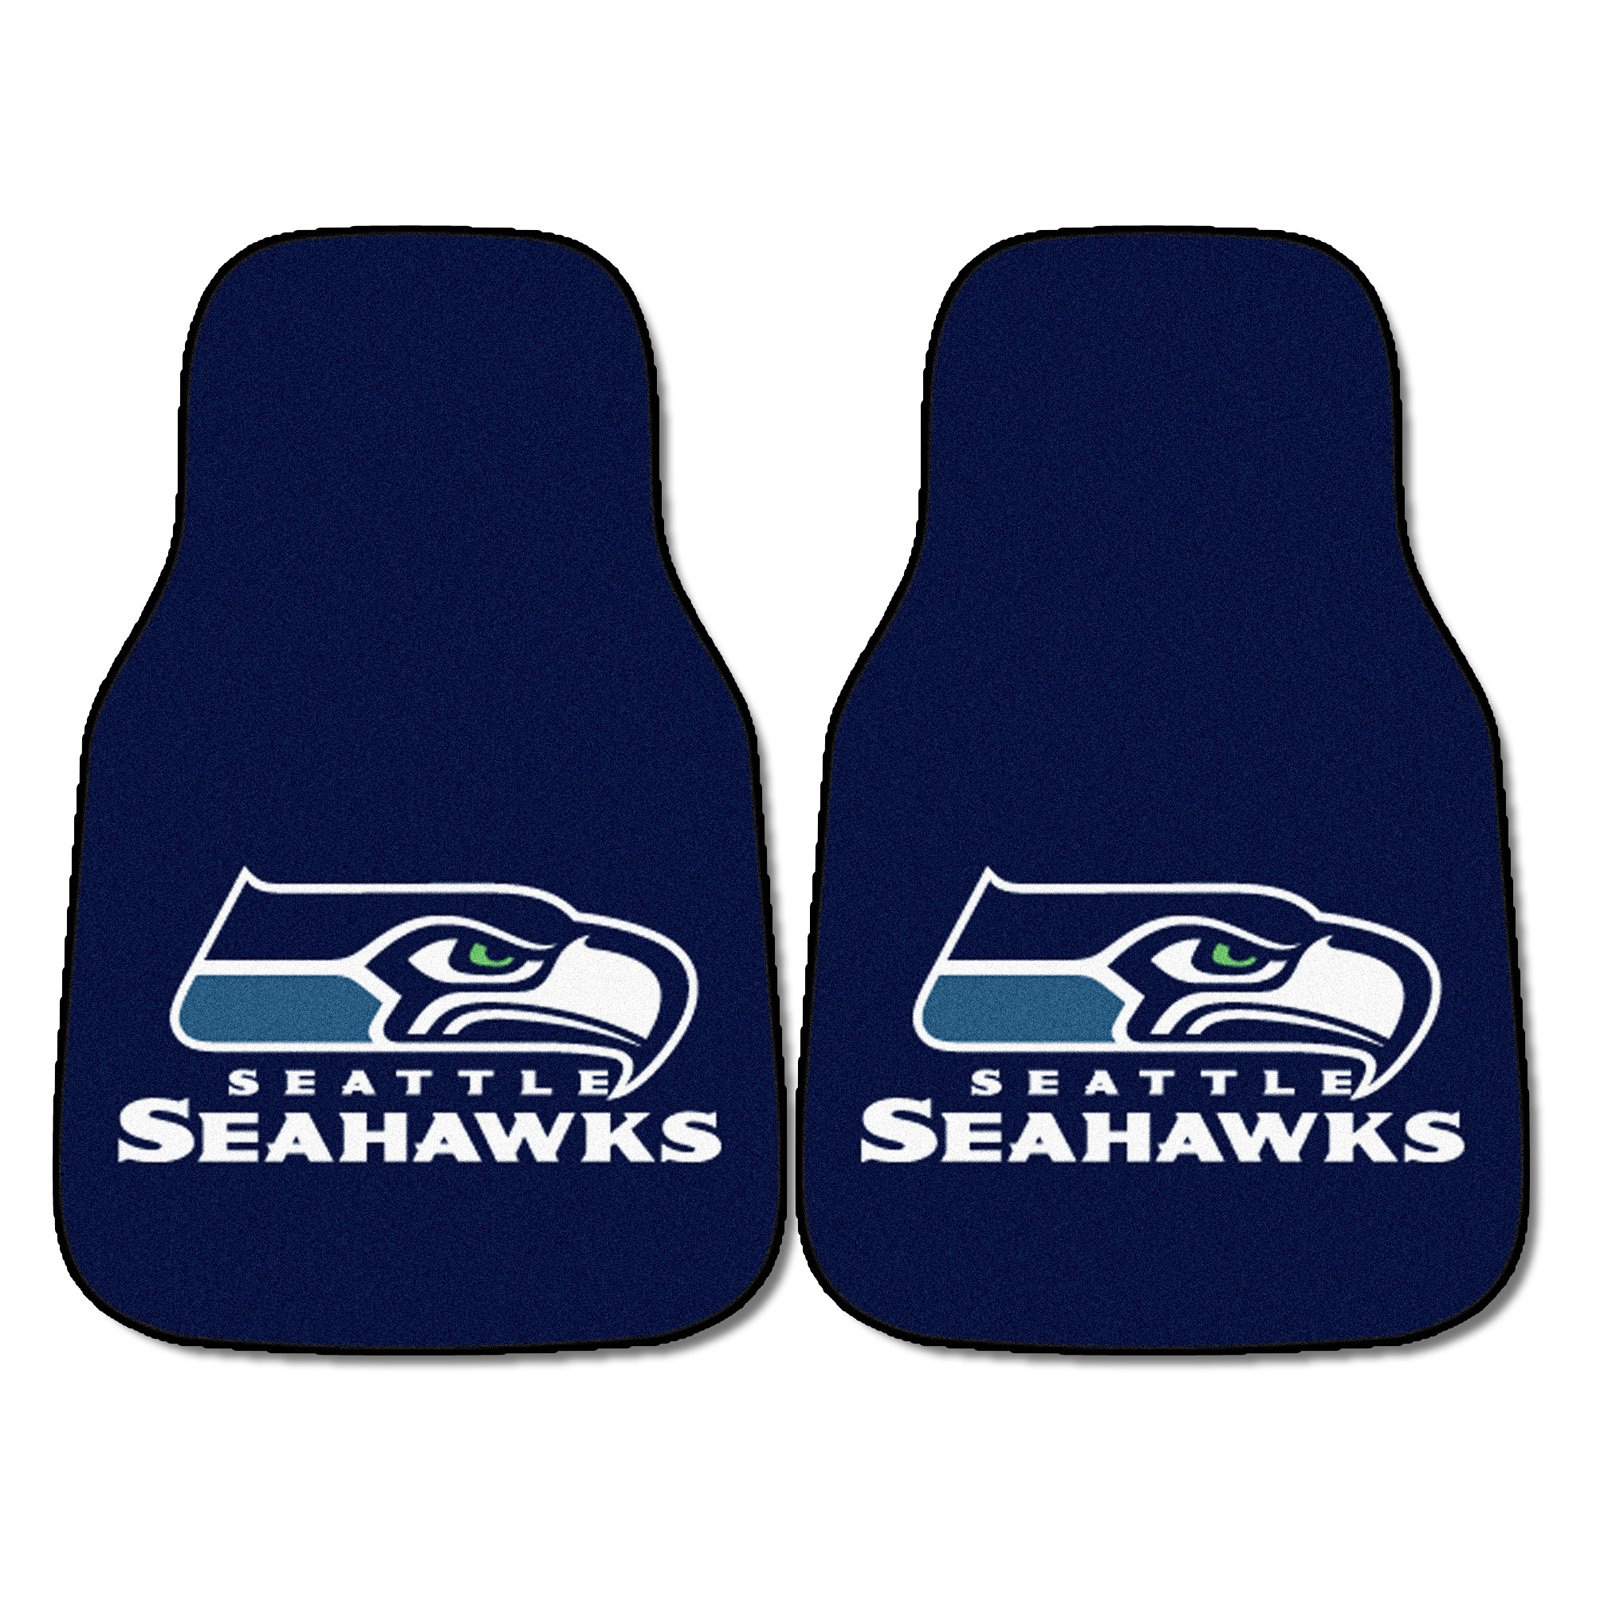 NFL Seattle Seahawks Carpeted Car Mats